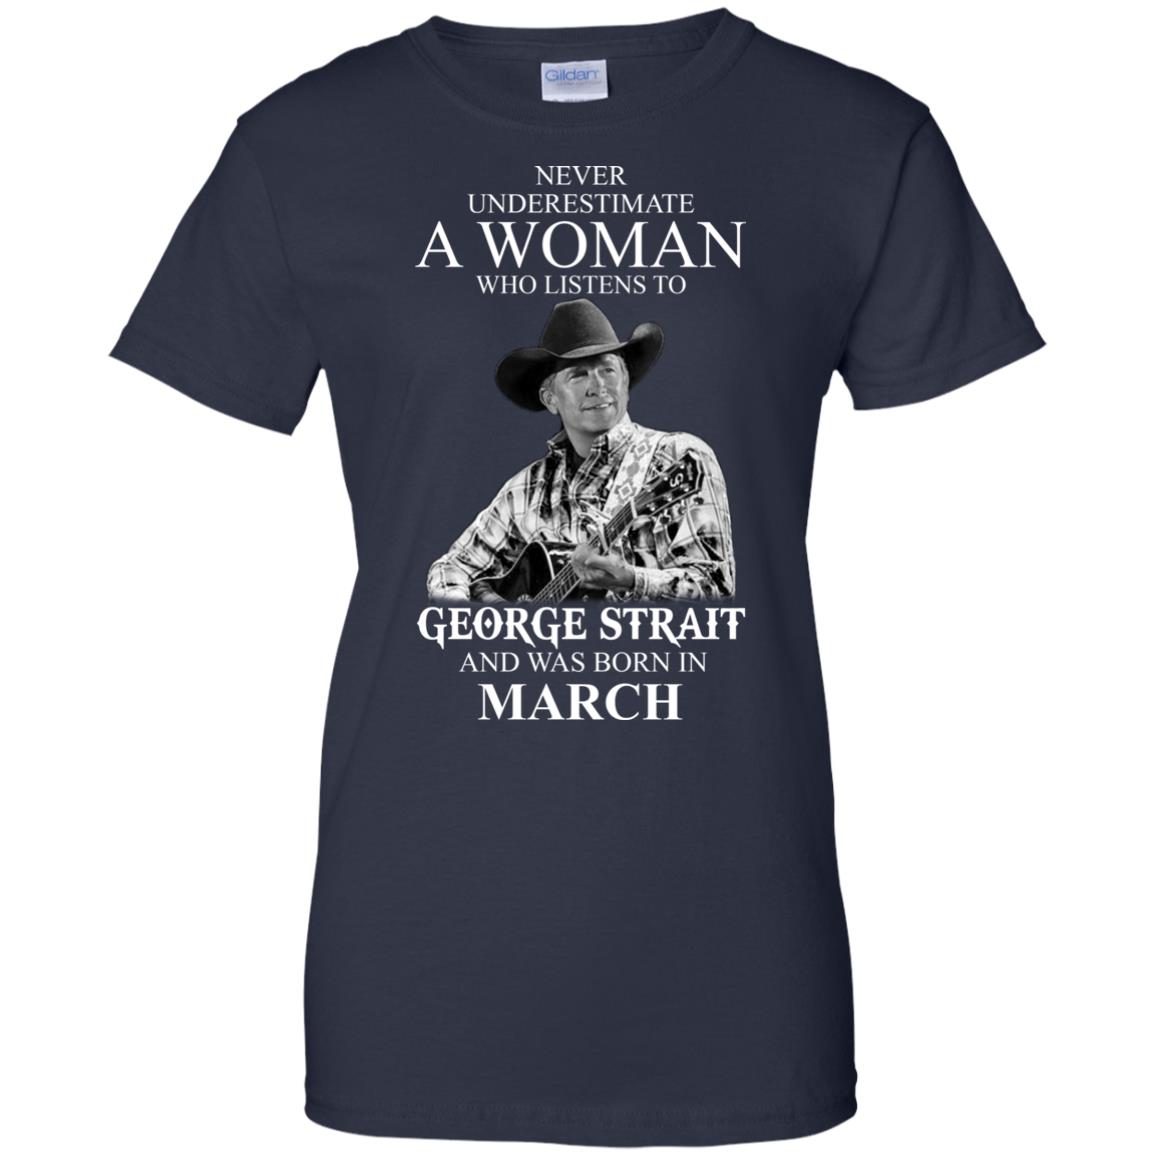 image 445 - Never Underestimate A Woman Who Listens To George Strait And Was Born In March shirt